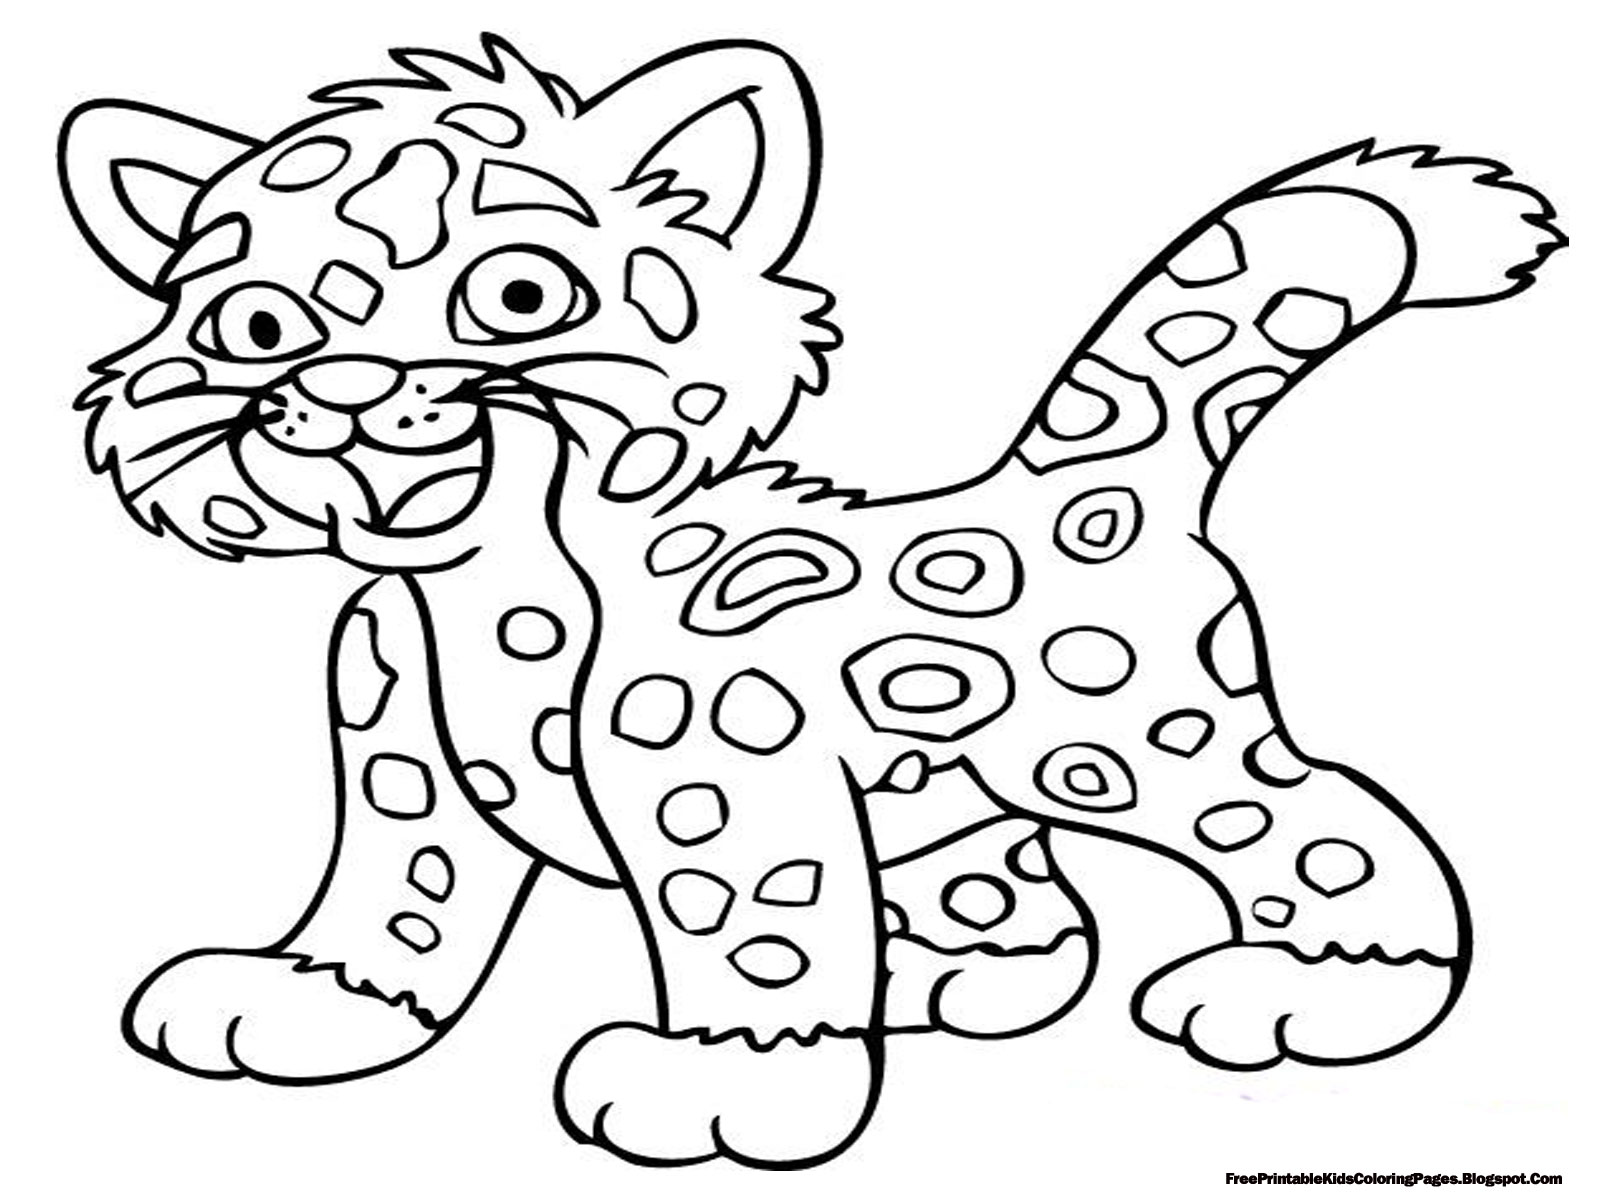 Colouring Pages To Print For Free : Jaguar coloring pages free printable kids